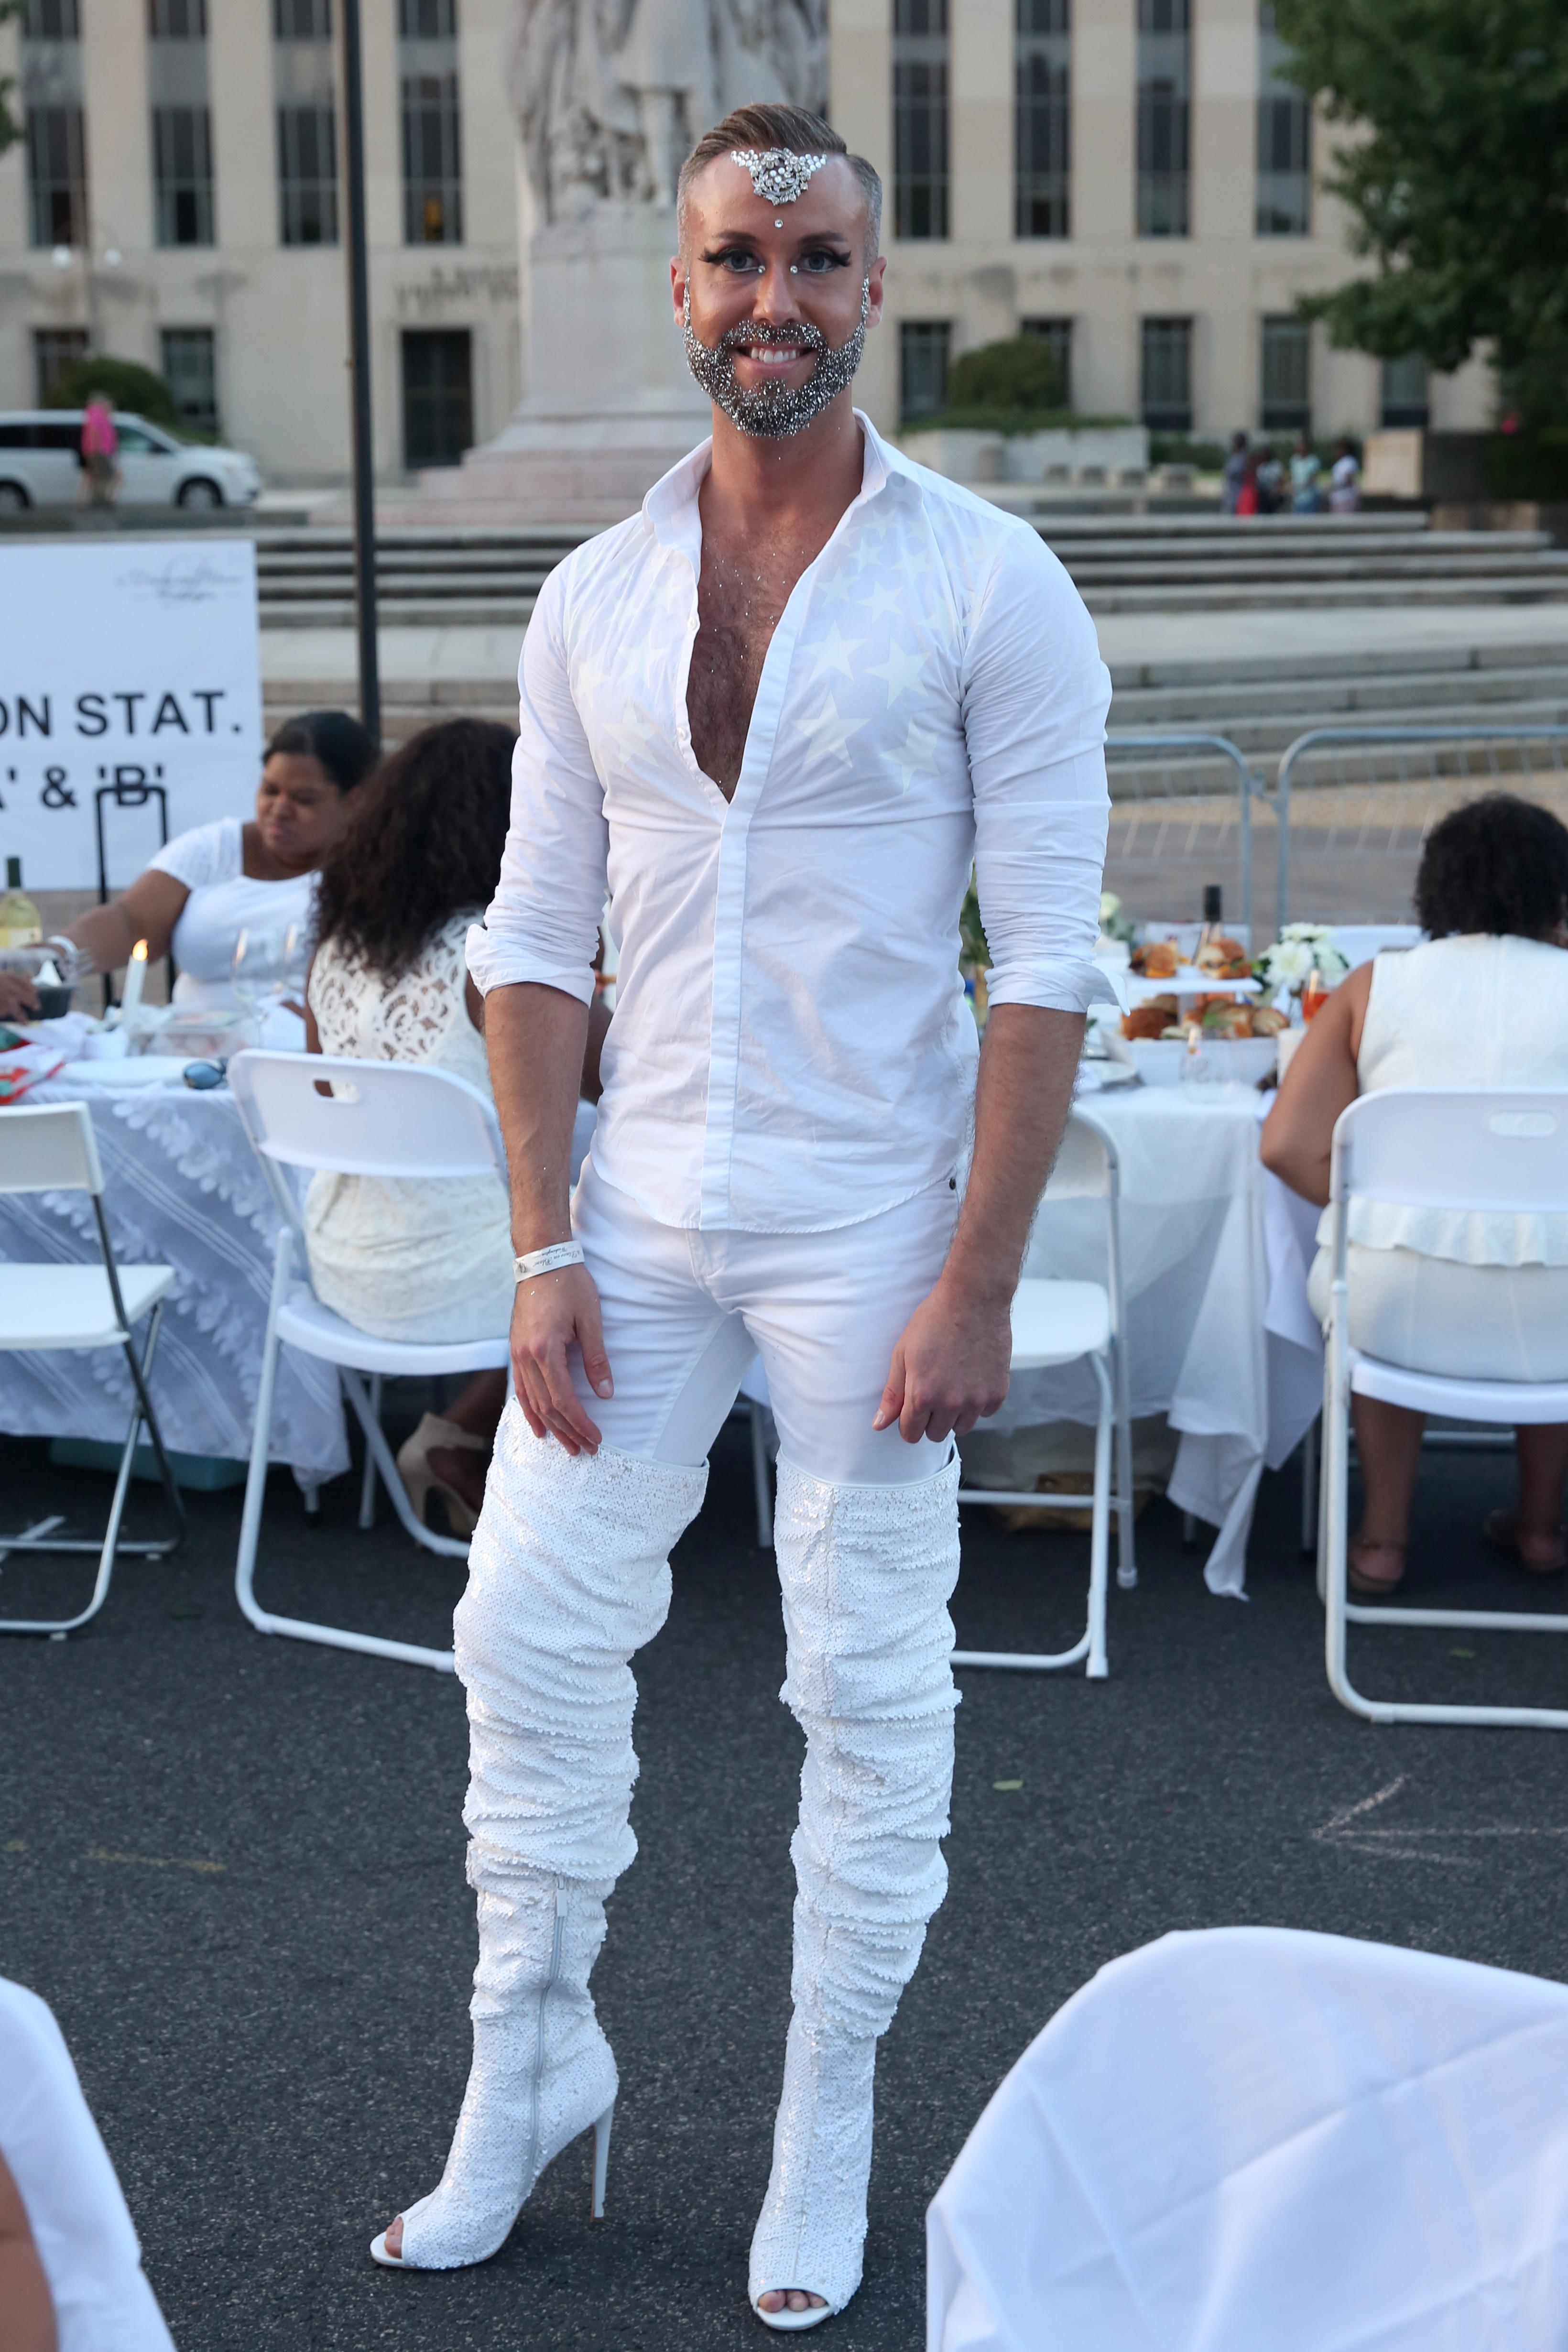 Justin McCown could was graceful and fabulous as he strutted around Diner en Blanc  in those heels!  (Amanda Andrade-Rhoades/DC Refined)